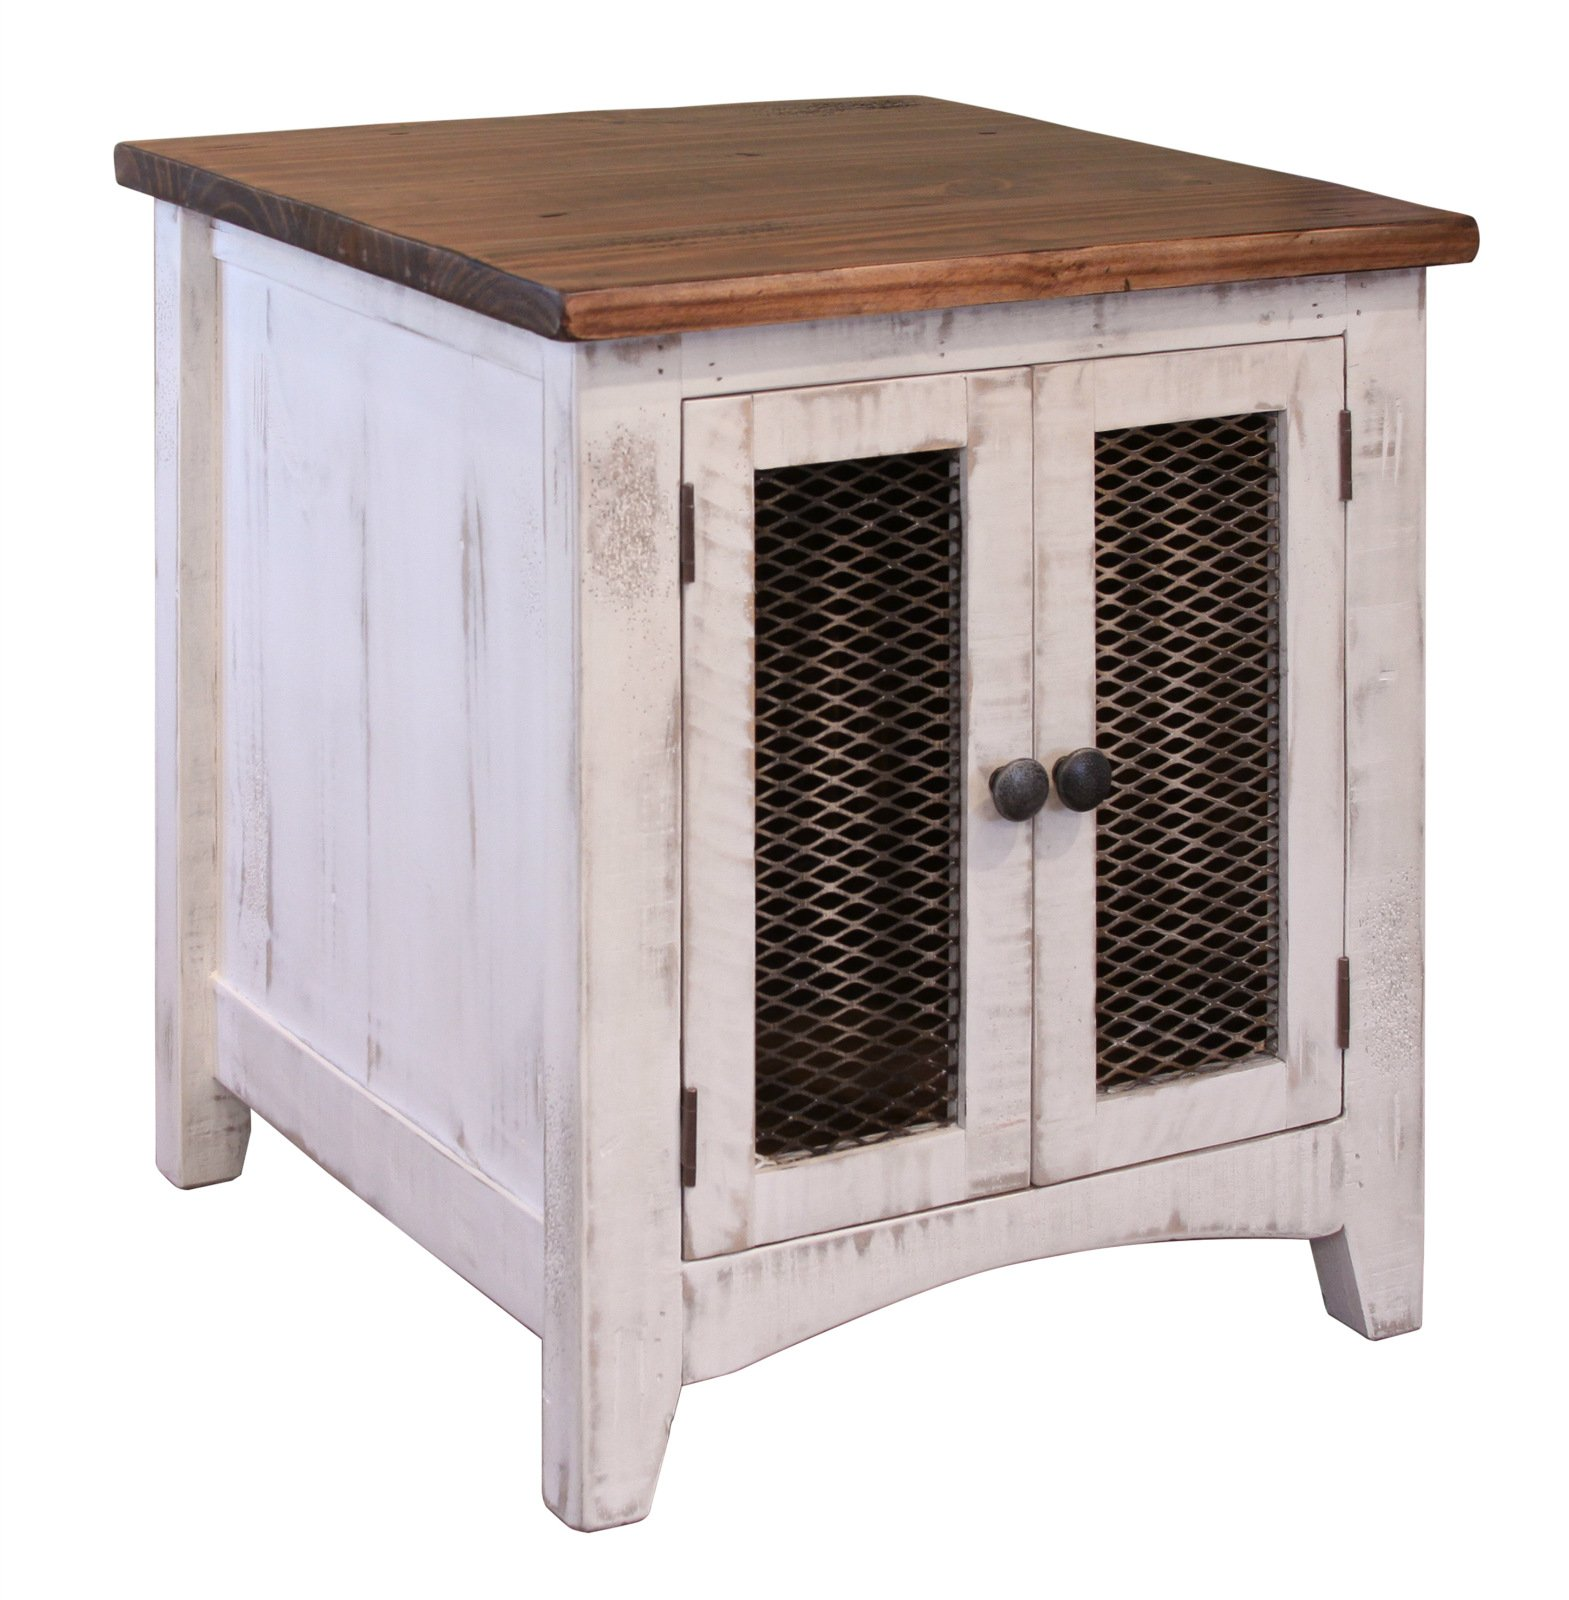 Anton Quality Solid Wood Distressed White End Table With Doors - Side Table Has Storage Behind Mesh Doors and Arrives Fully Assembled